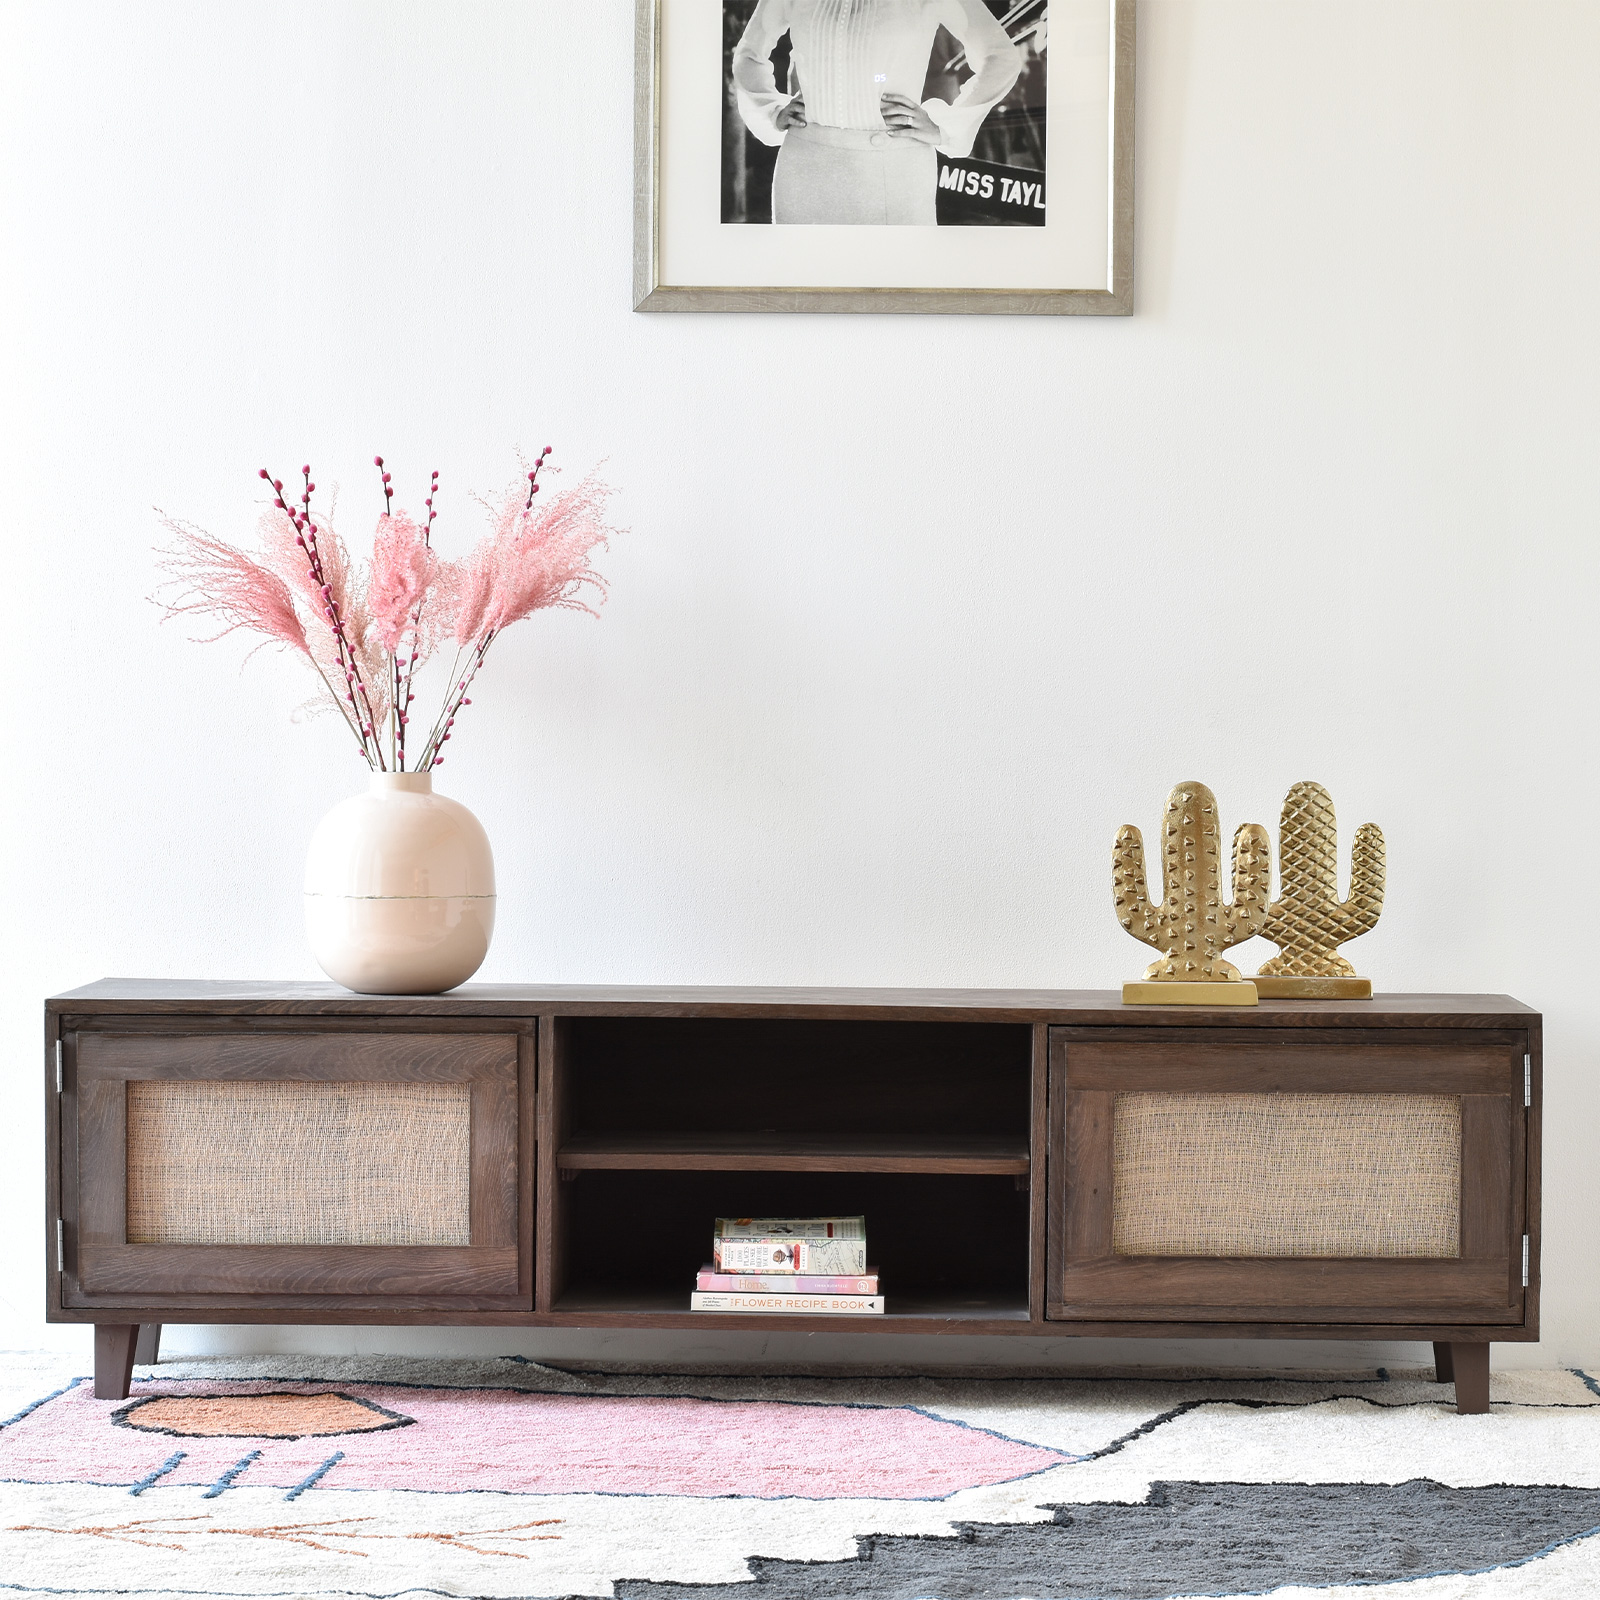 magnolia-tv-table-in-wood-and-rattan-